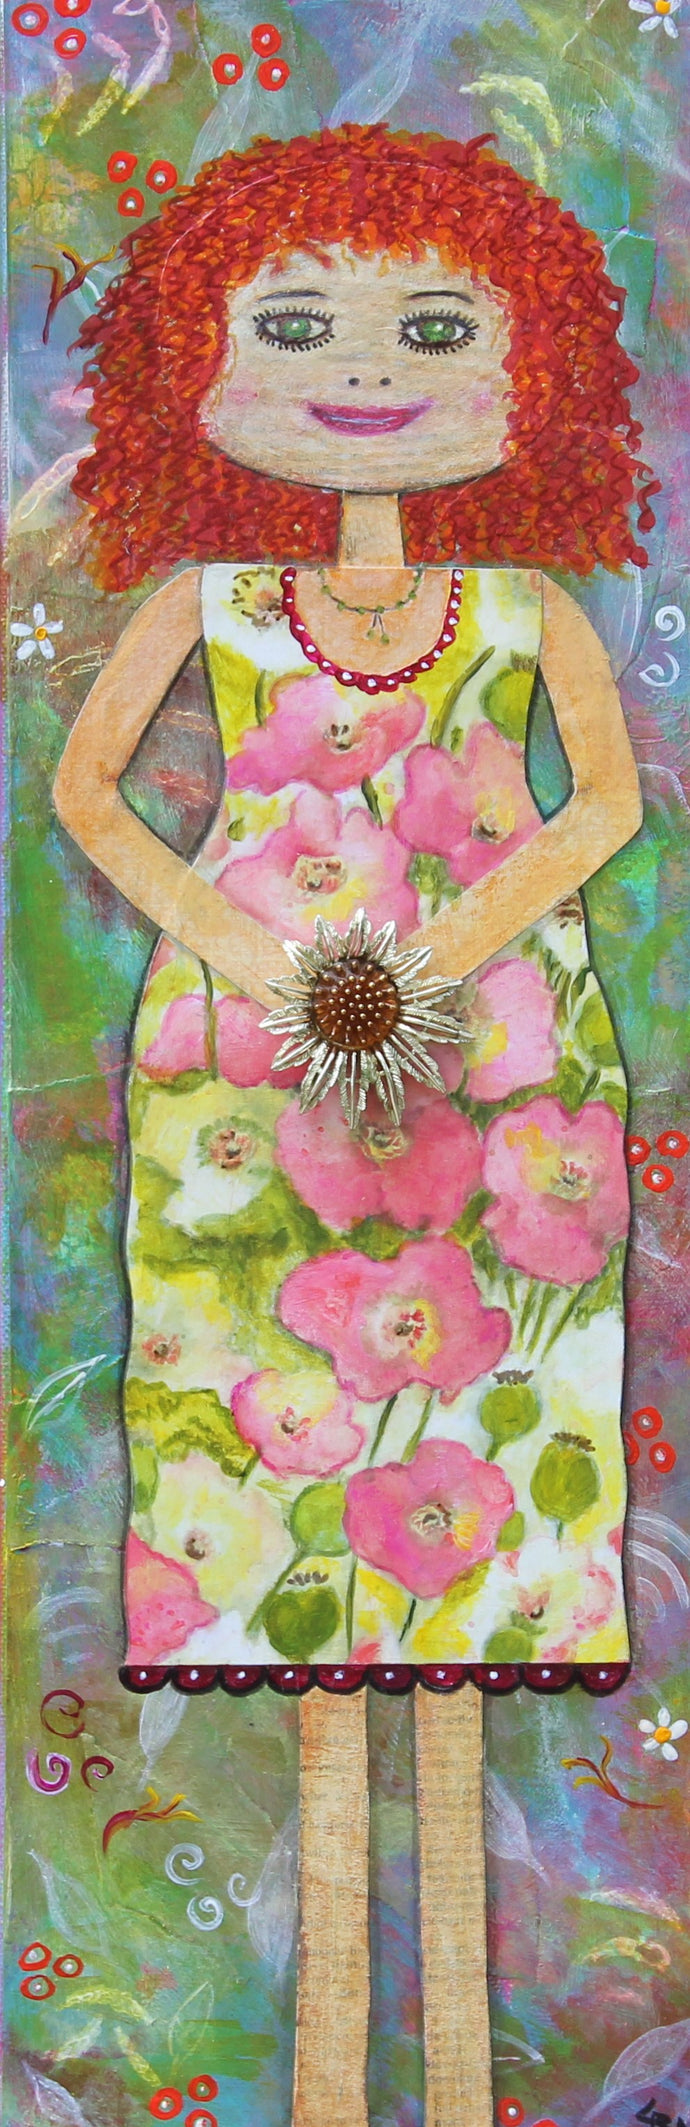 Mattie; Large Mixed Media Girl Painting with Vintage Jewelry